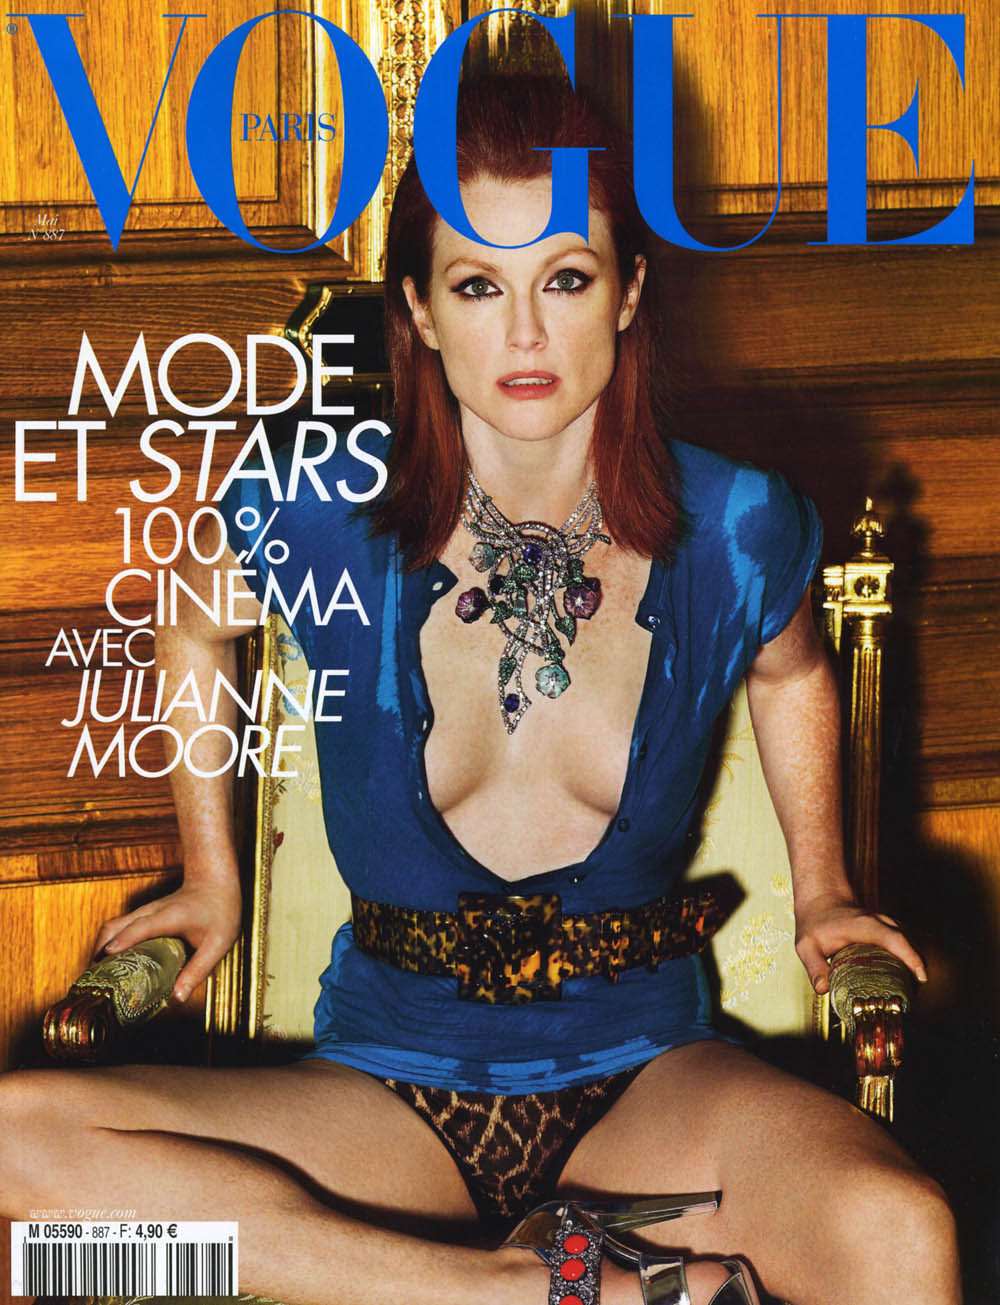 Julianne Moore Covers Vogue Paris May 2008